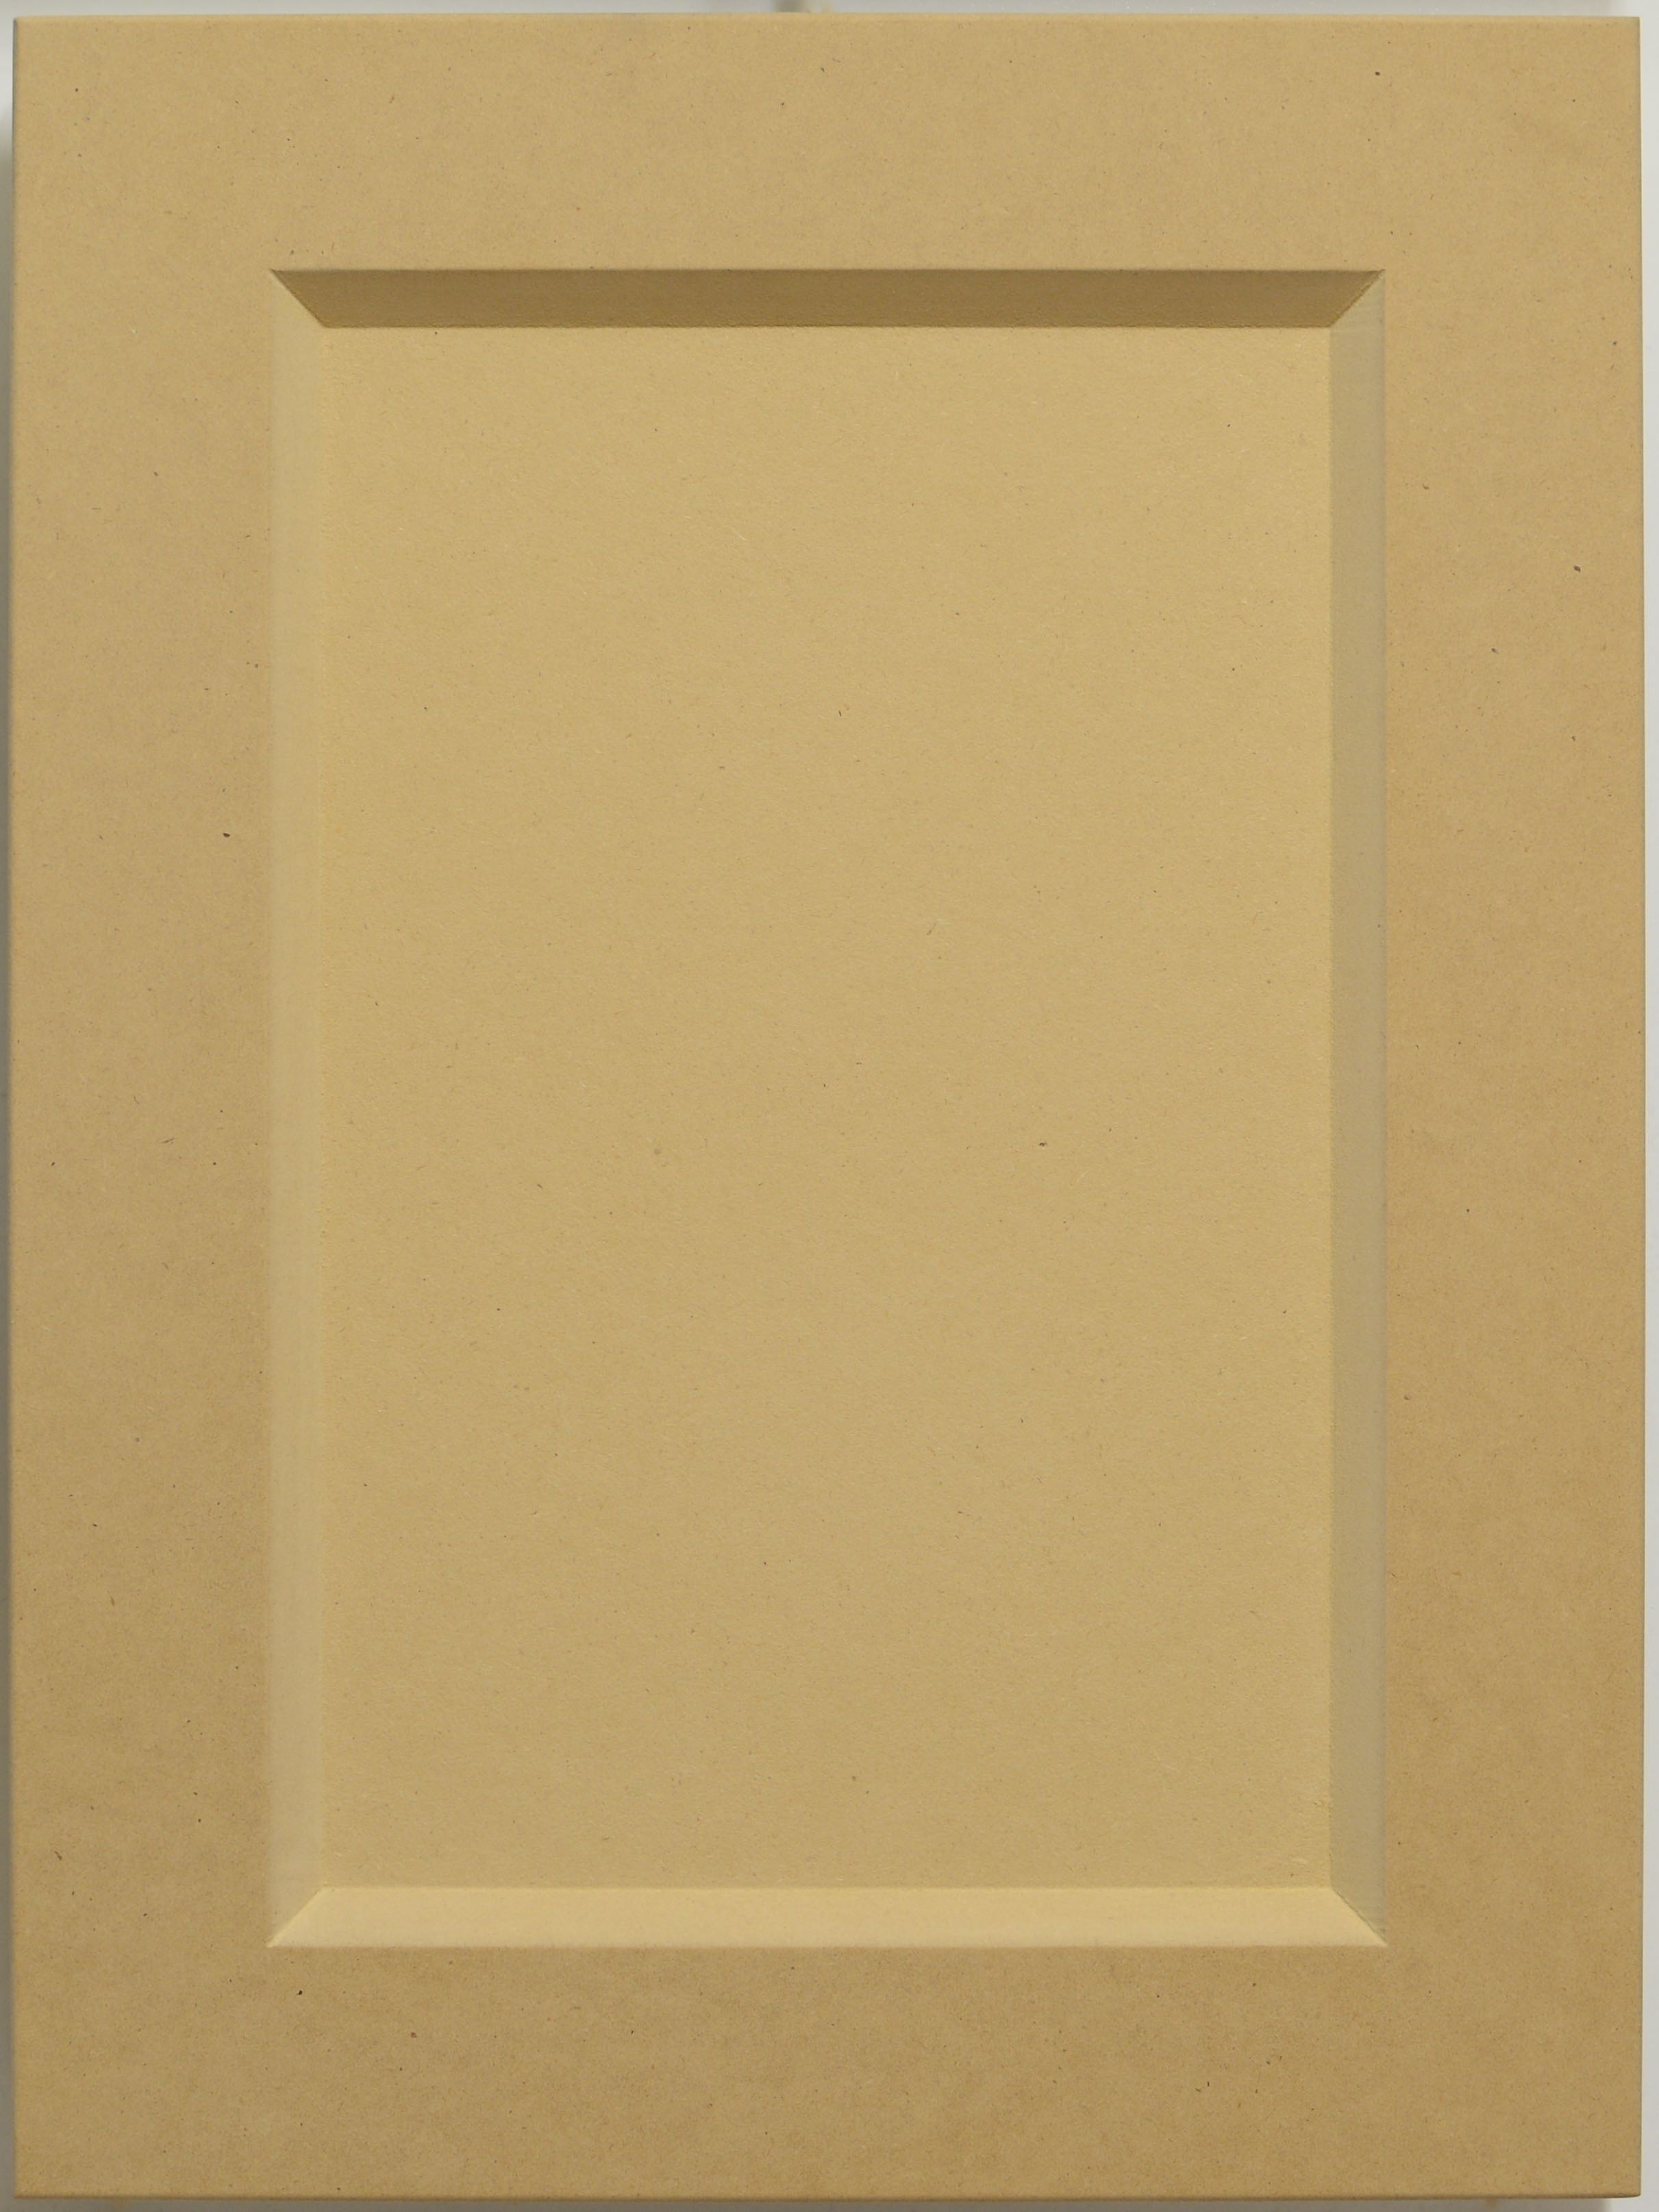 mdf kitchen cabinet doors area rug allstyle tilford door bevelled inside profile click here for a high res photo